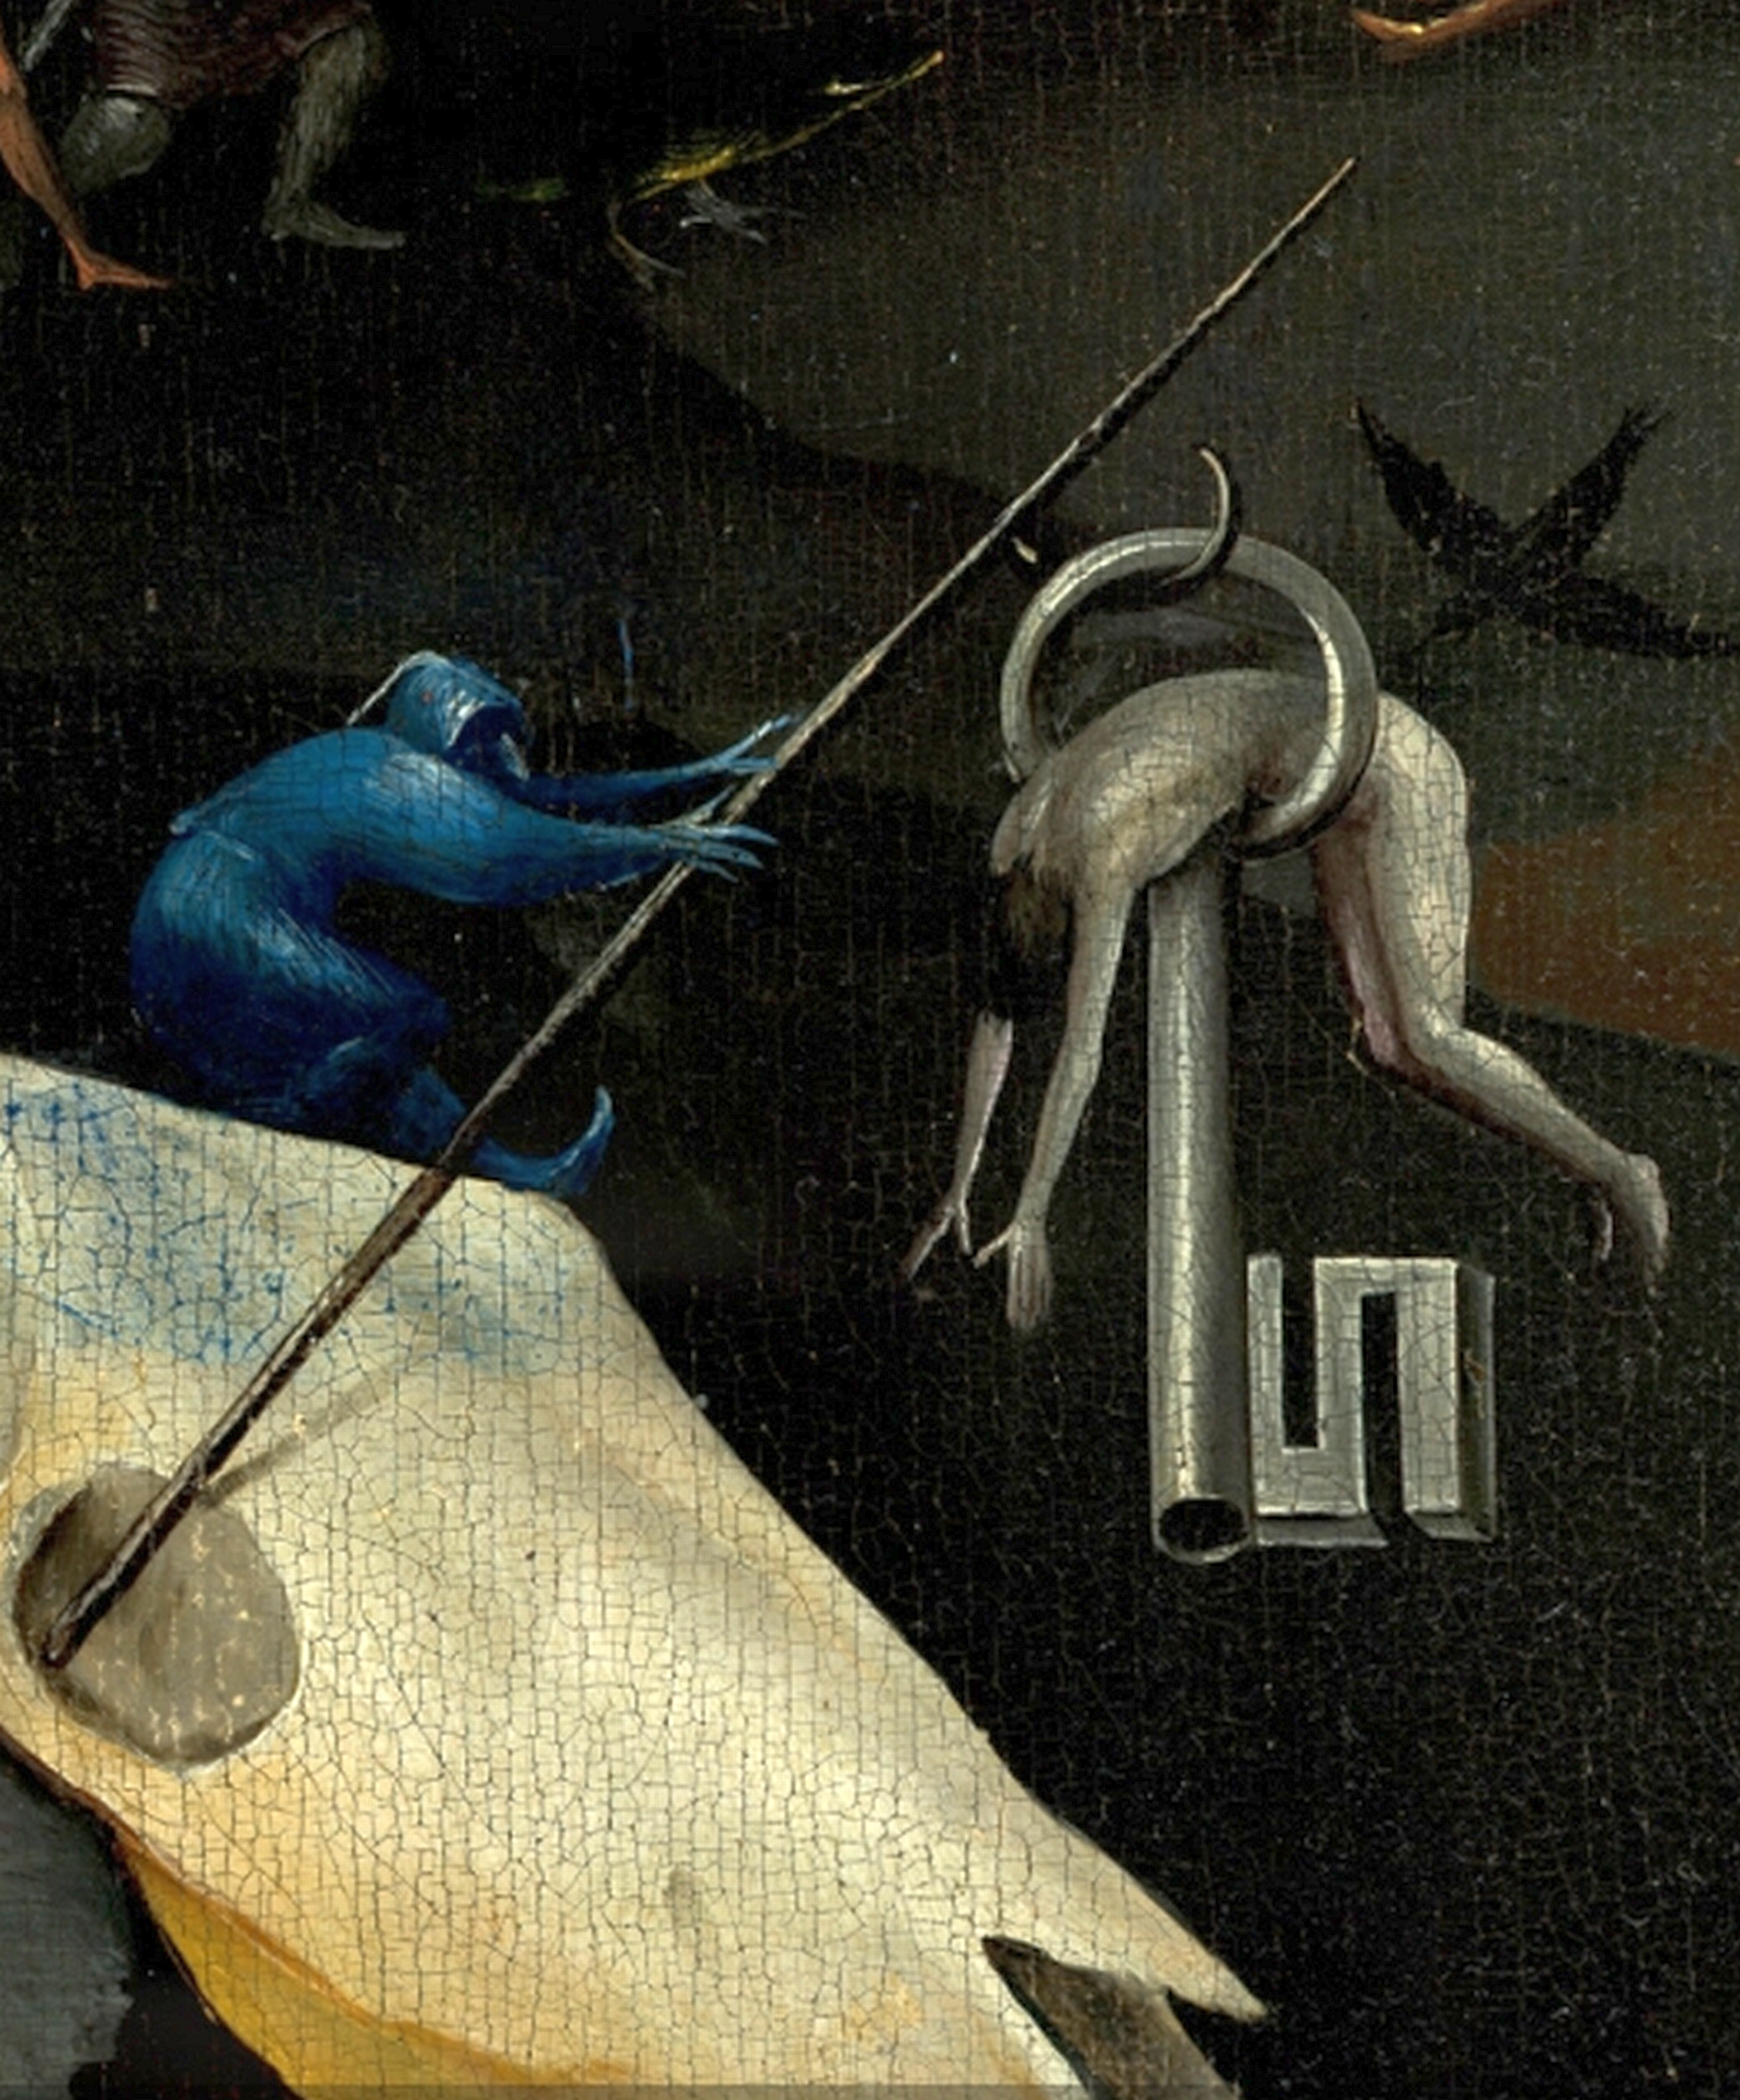 bosch the garden of earthly delights. File:Bosch, Hieronymus - The Garden Of Earthly Delights, Right Panel Detail Bosch Delights 1